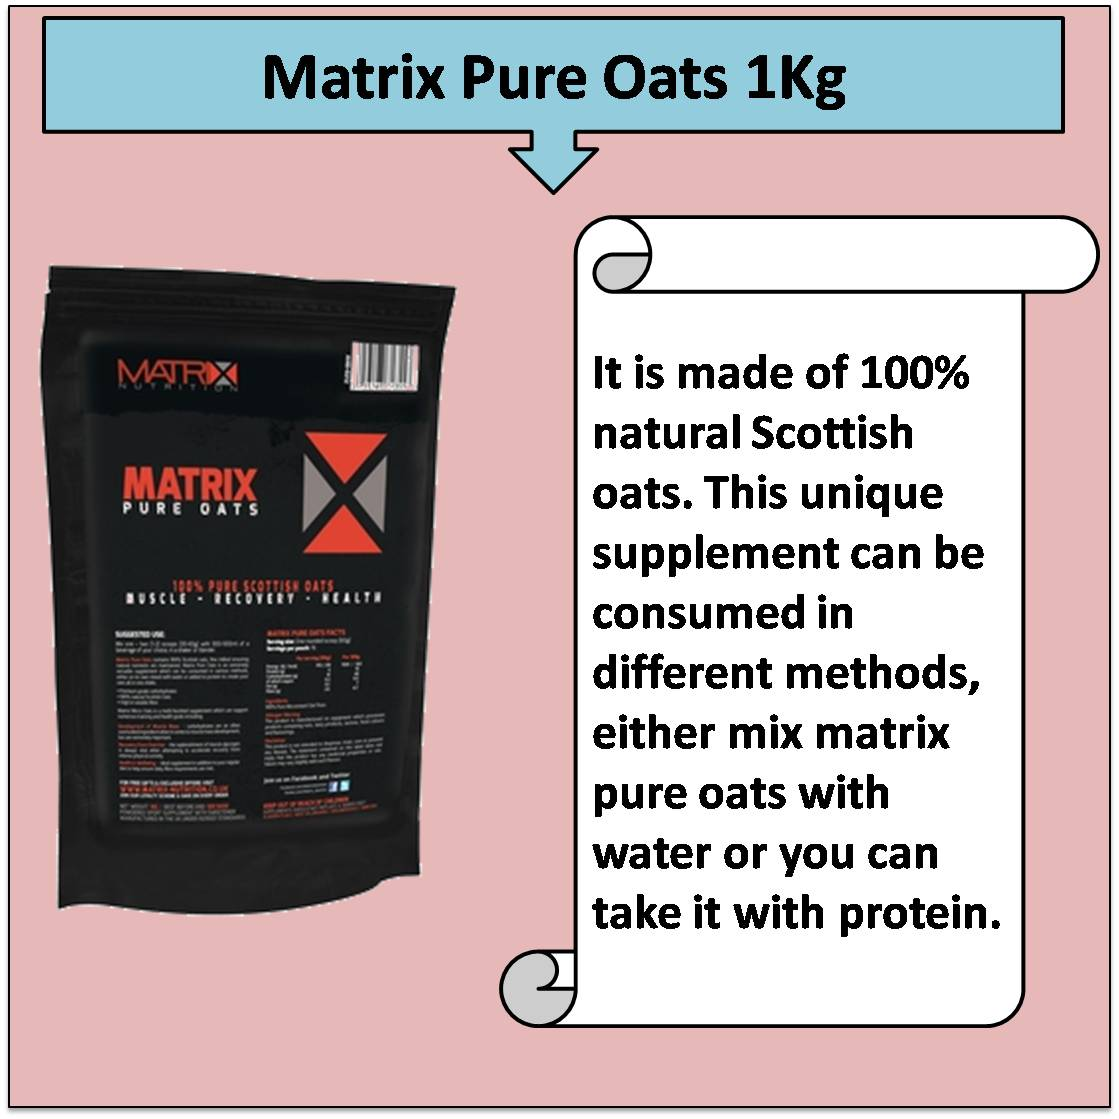 Matrix Pure Oats 1Kg